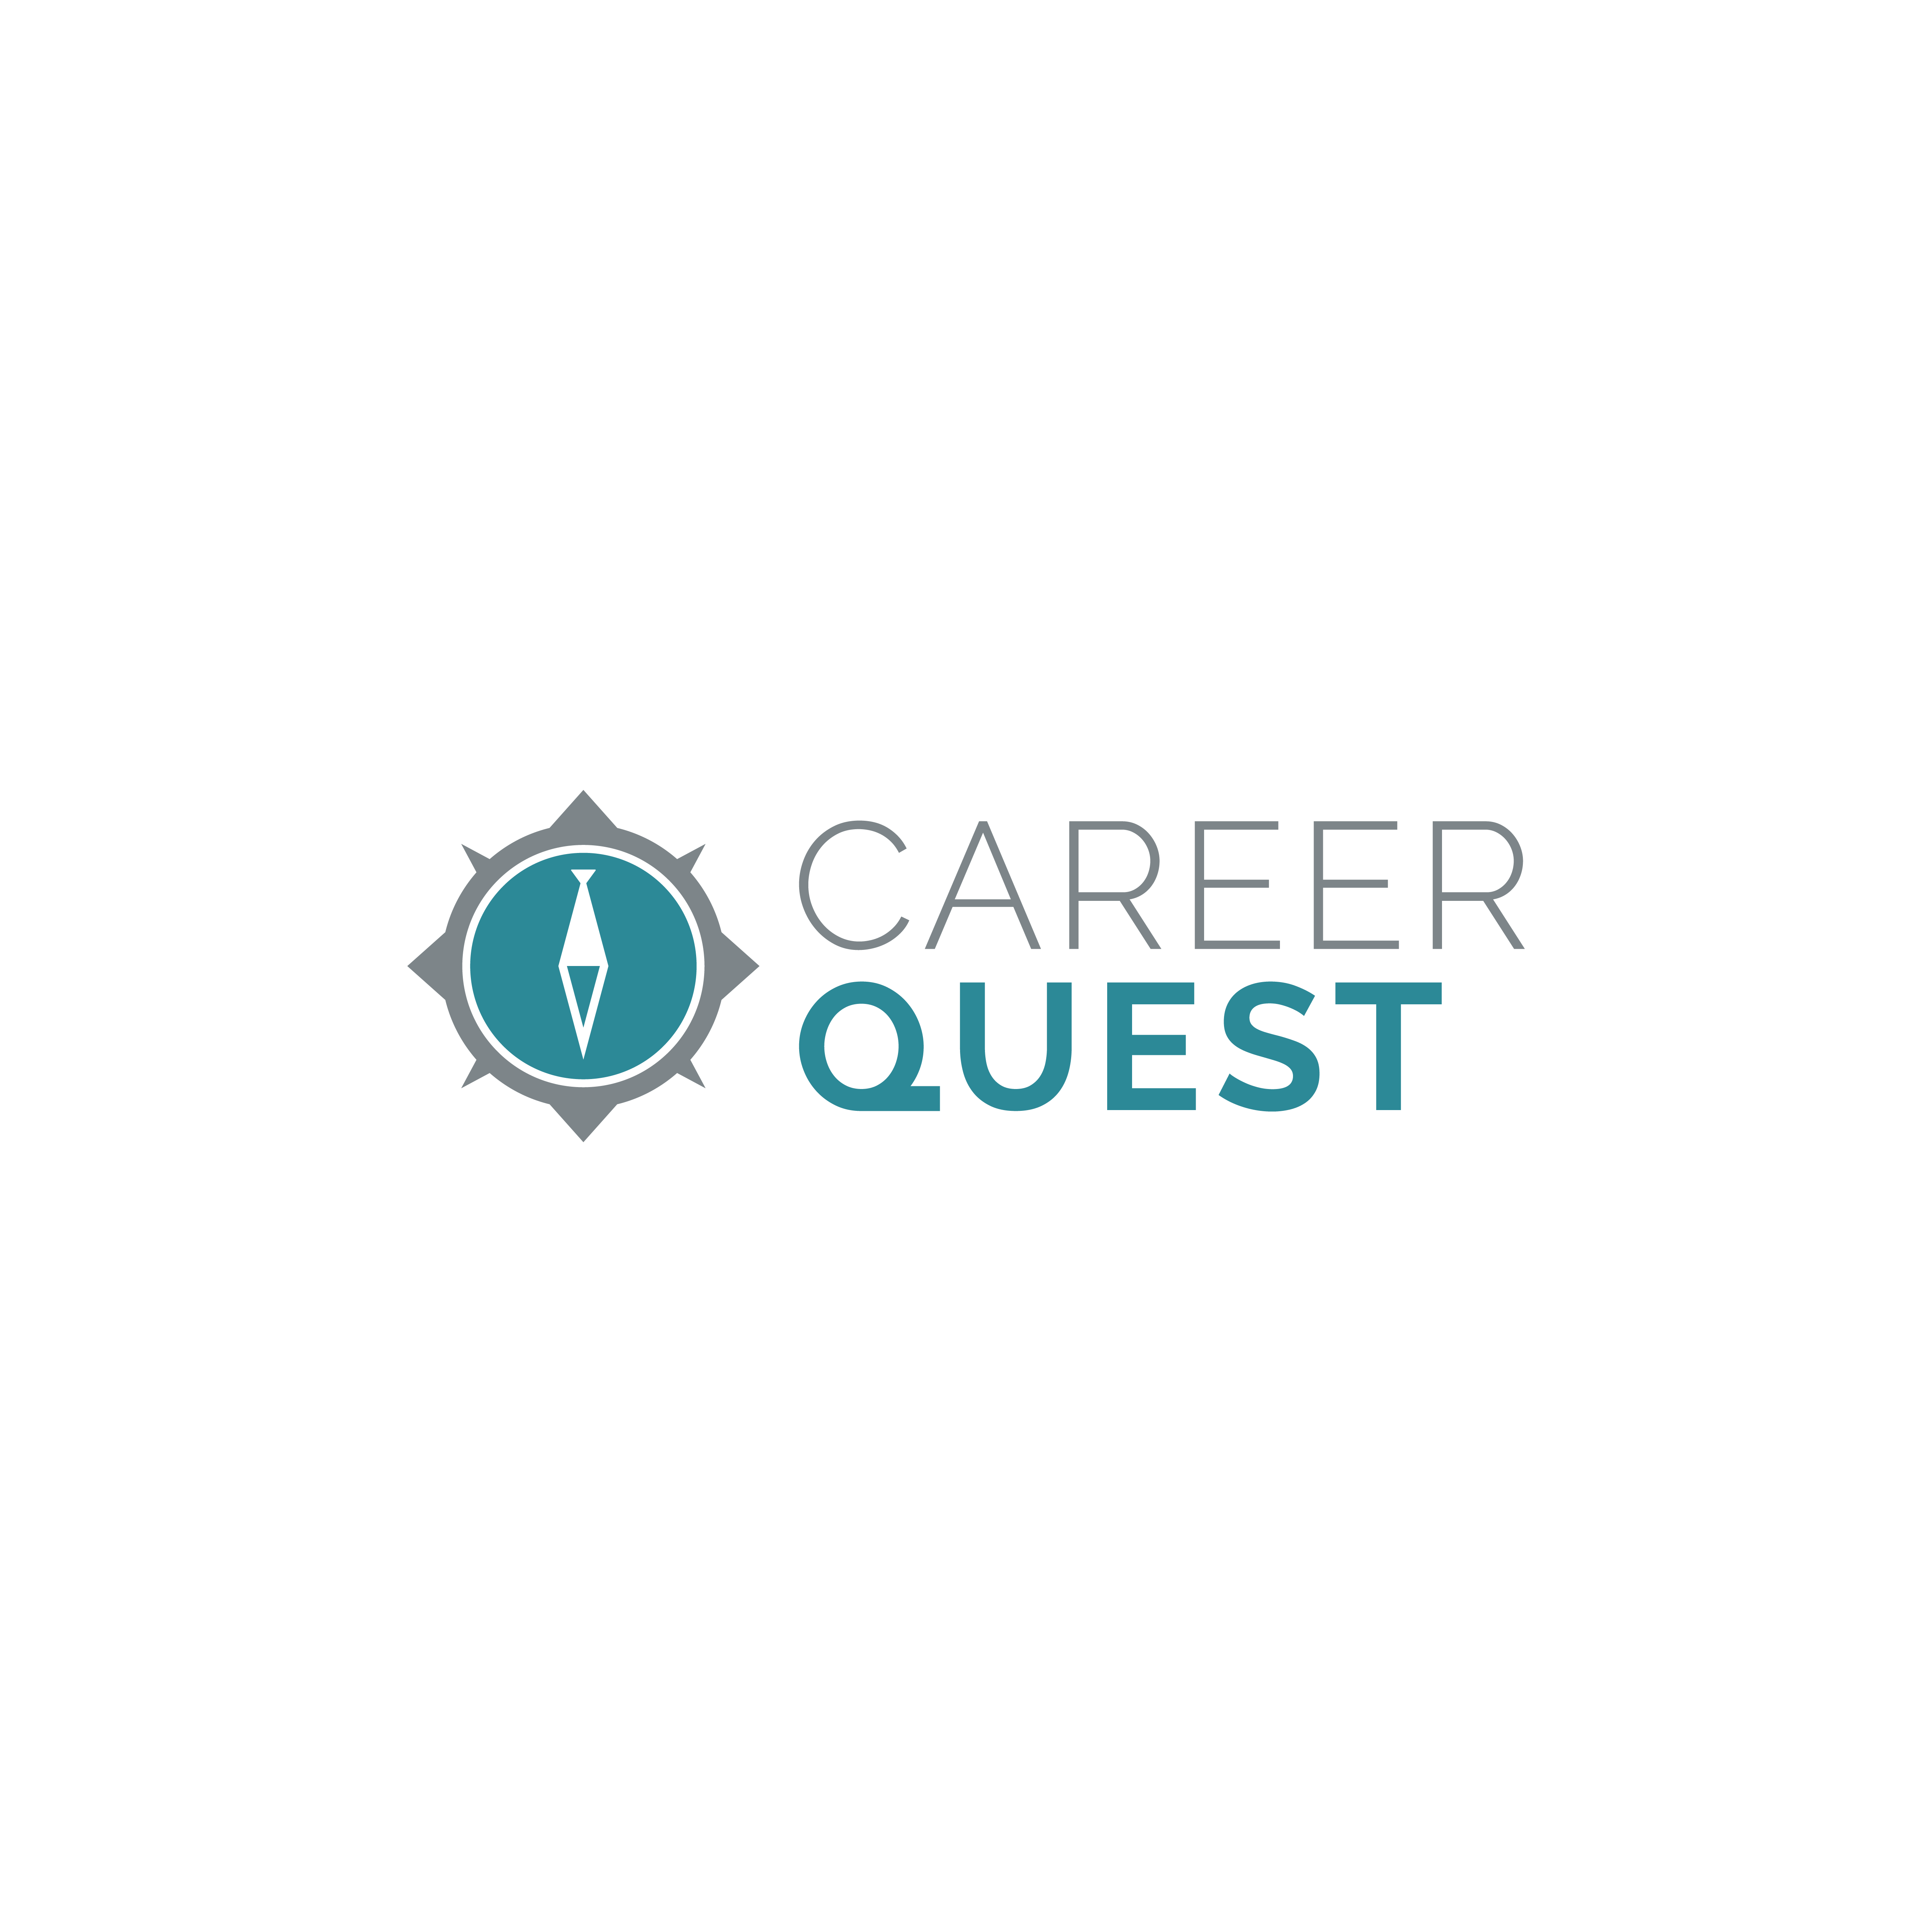 Career Quest - Logo Design